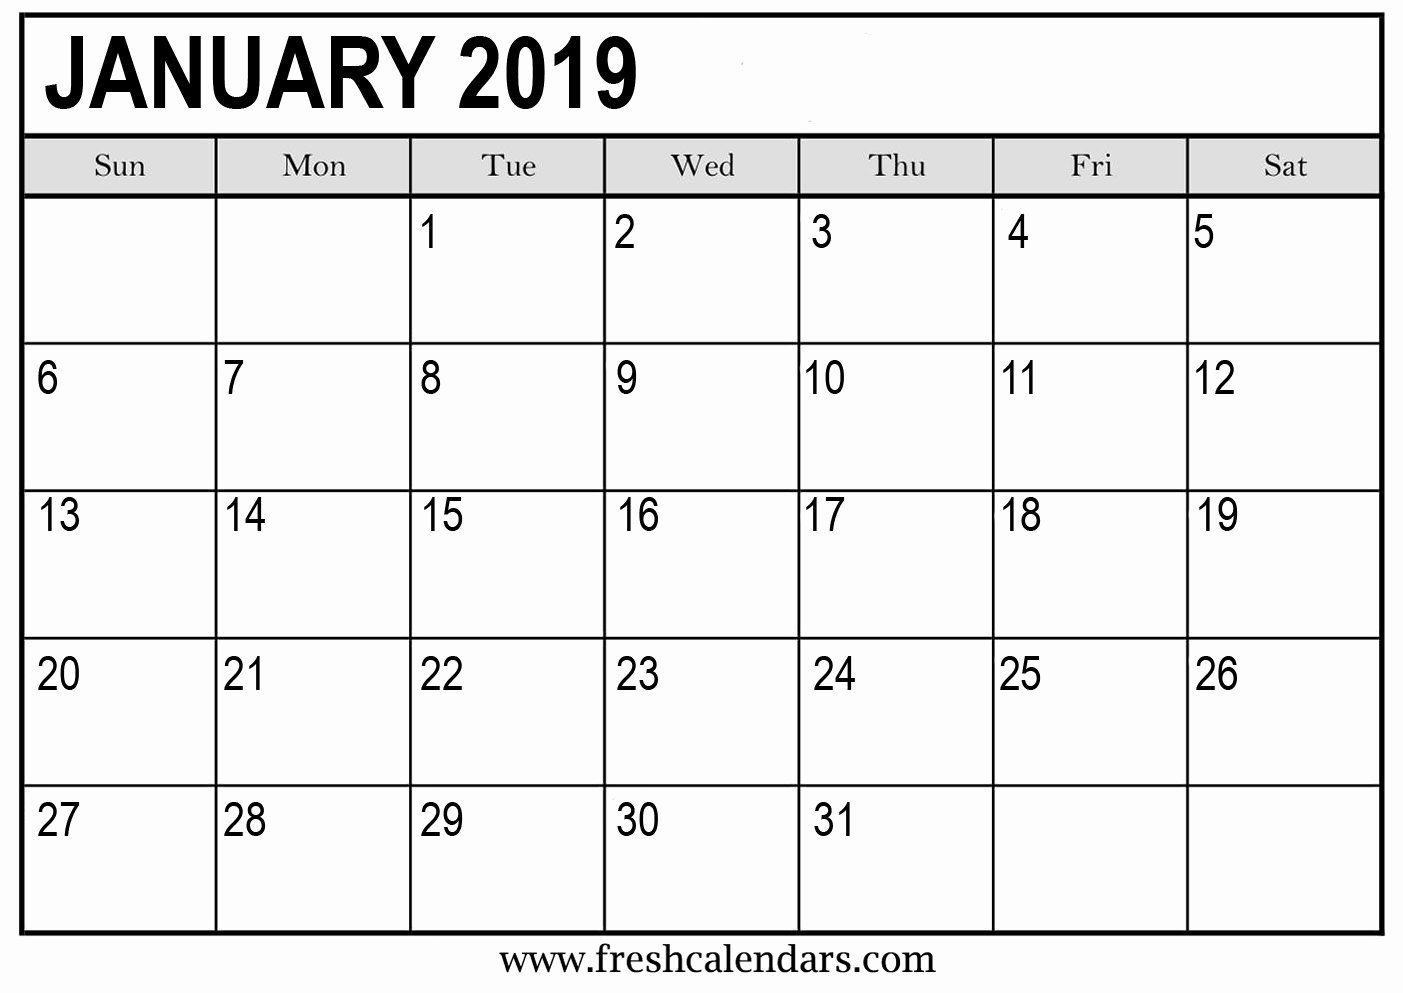 Monthly Calendar Template 2019 Lovely January 2019 Calendar Printable Fresh Calendars